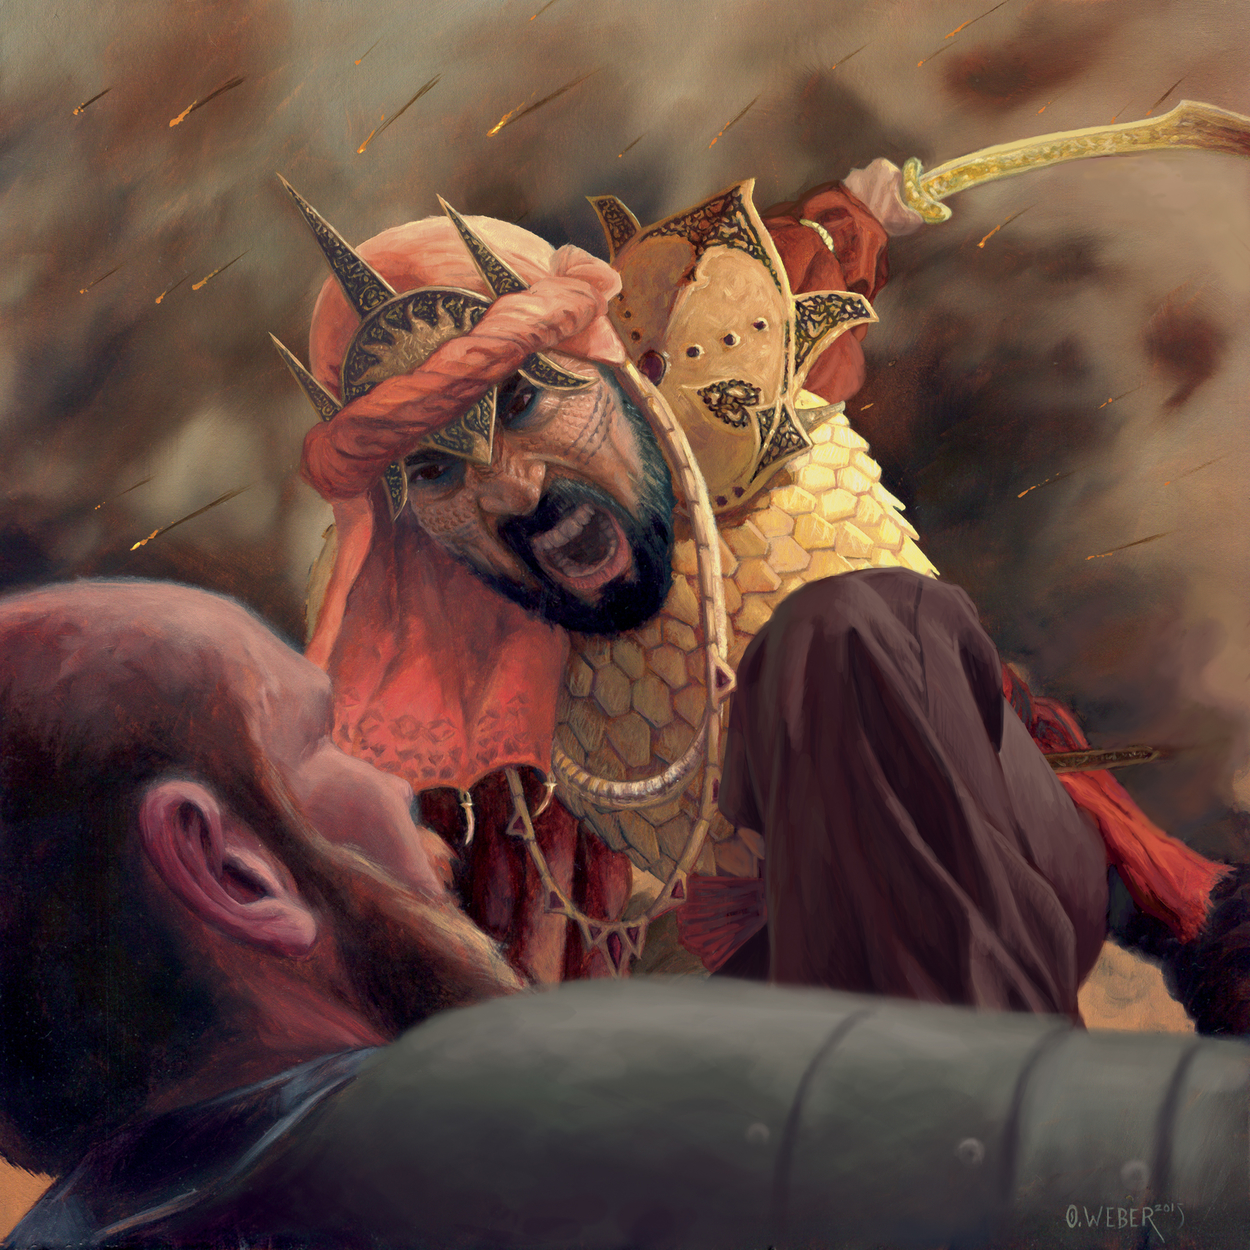 Haradrim Pirate Artwork by Owen Weber